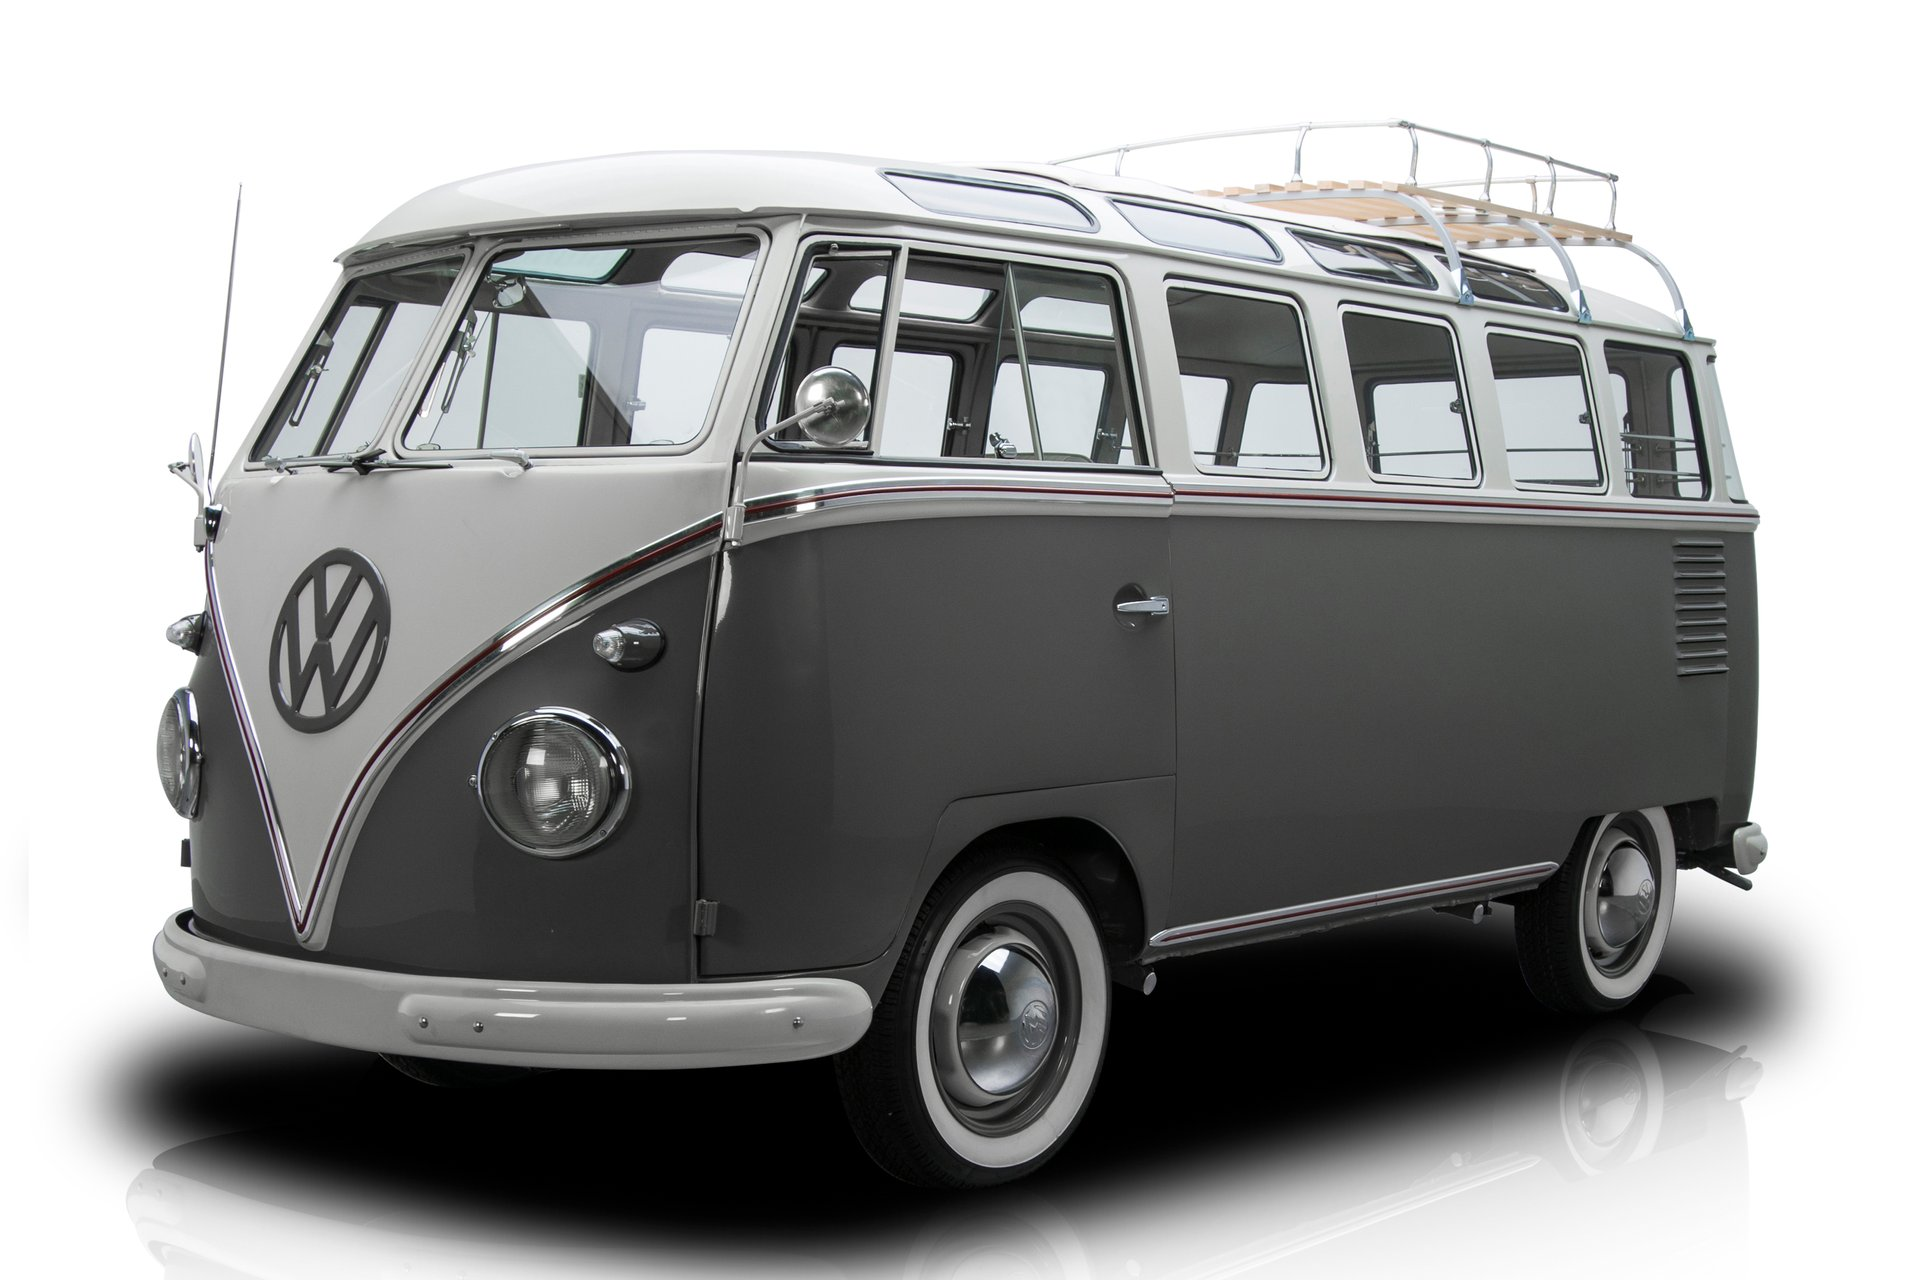 1960 volkswagen kombi 23 window bus